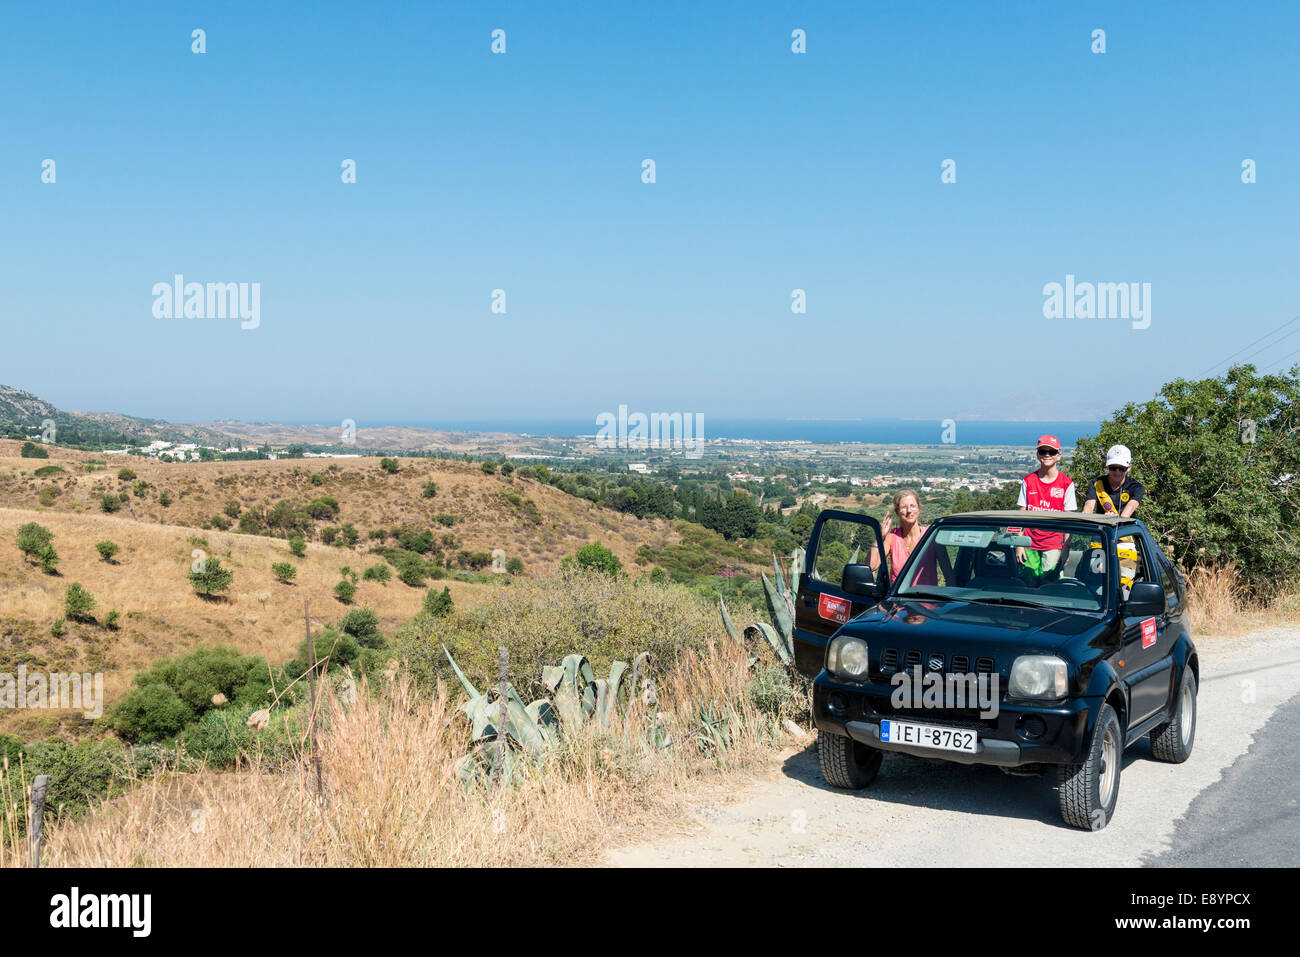 Mother with two children driving in an open jeep up the mountains to Pyli, Kos, Greece - Stock Image